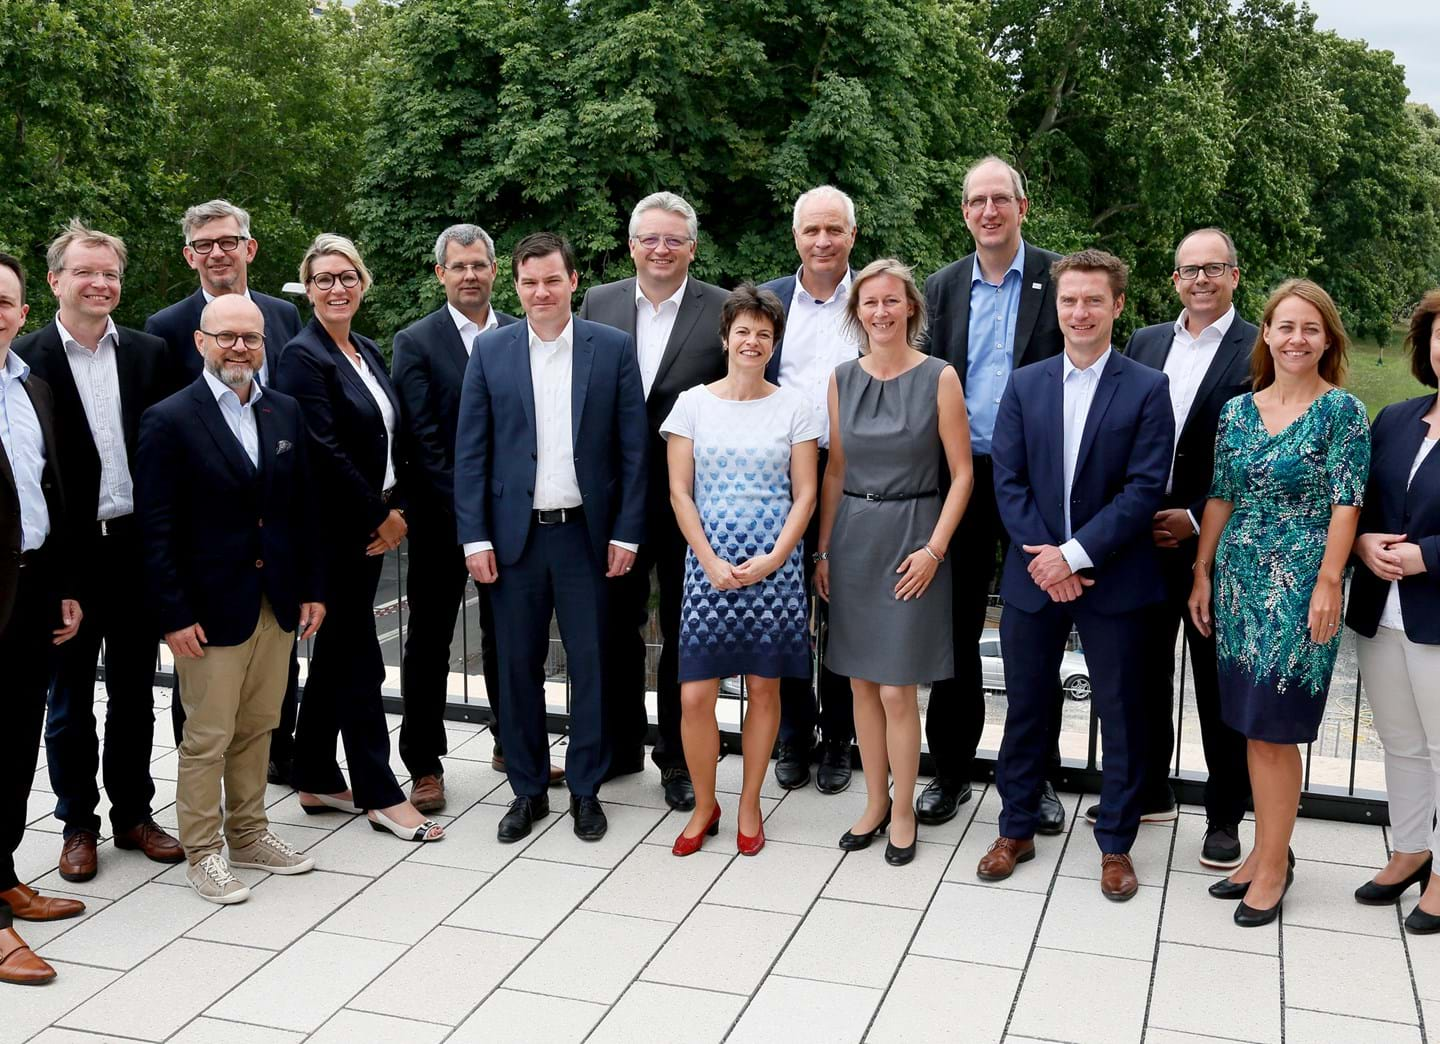 Gerhard Stübe re-elected to EVVC board